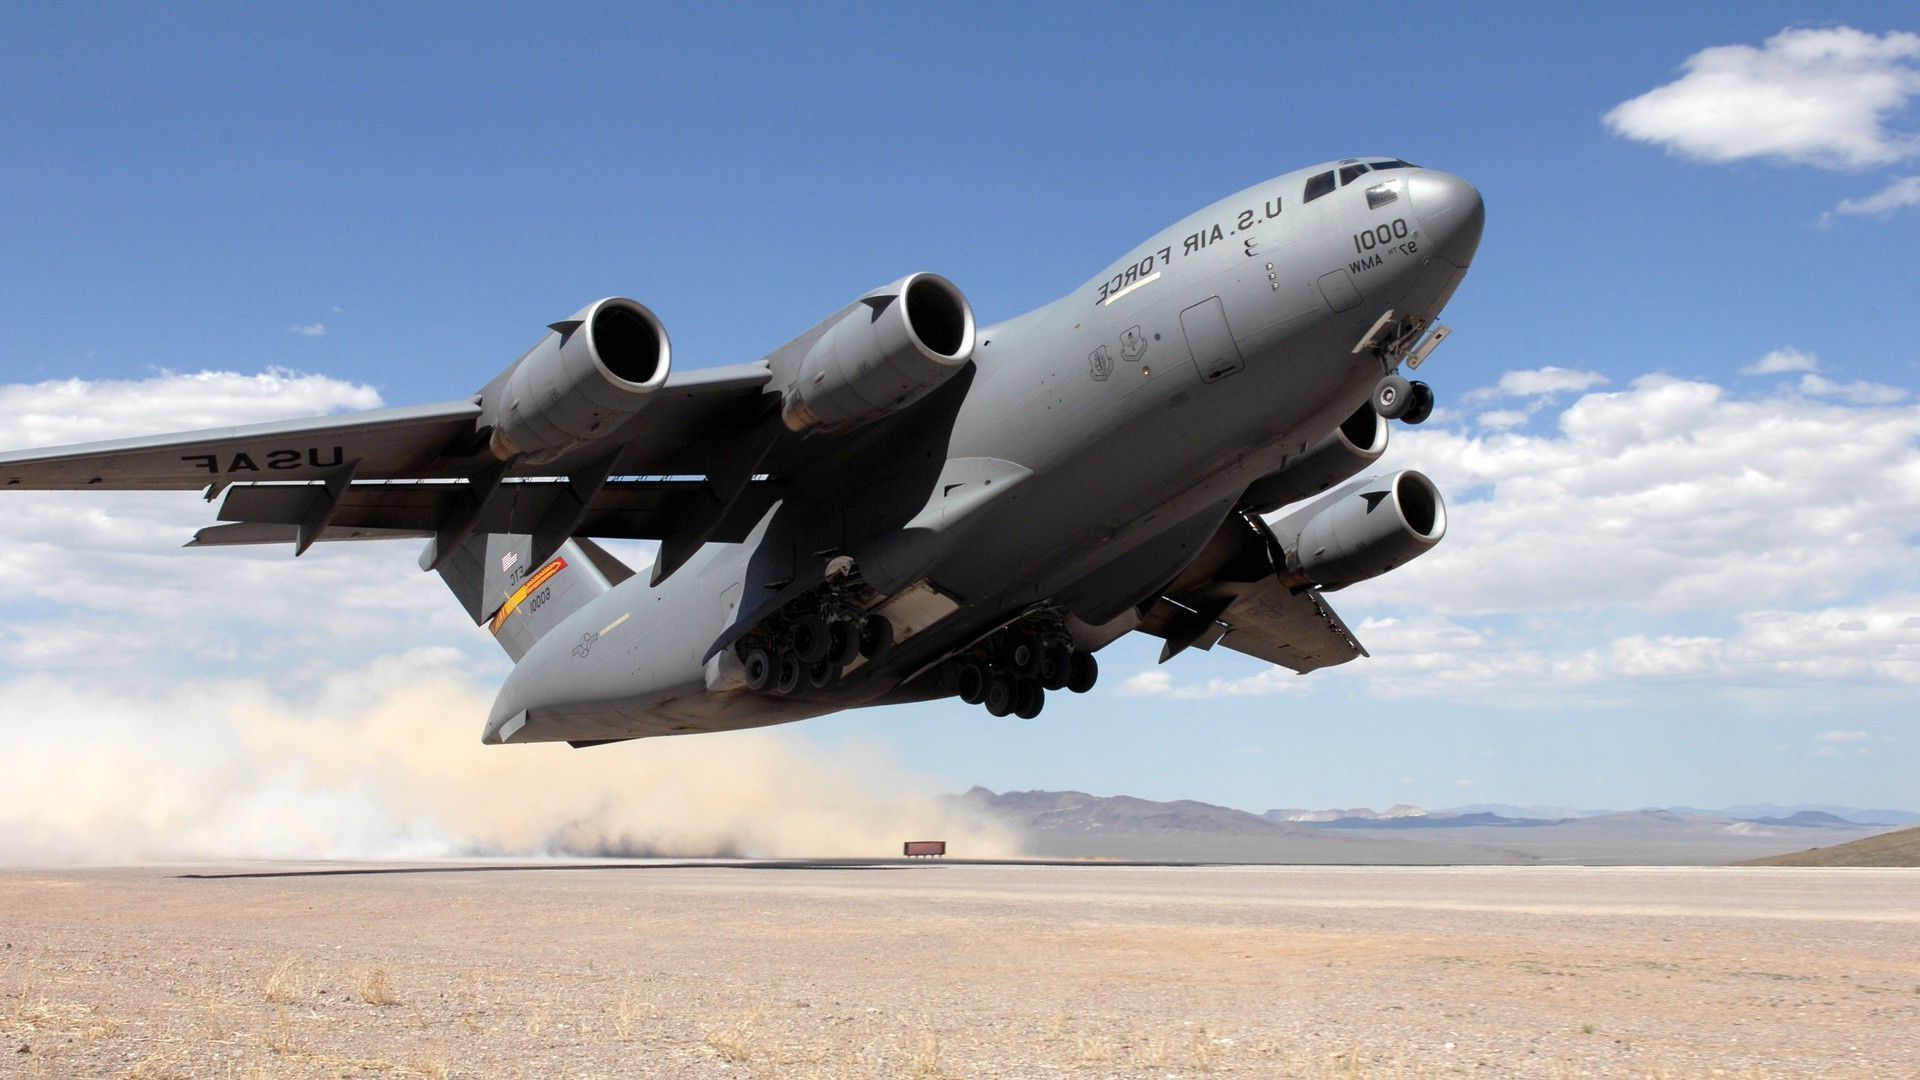 transport aircraft. desktop wallpapers for free.